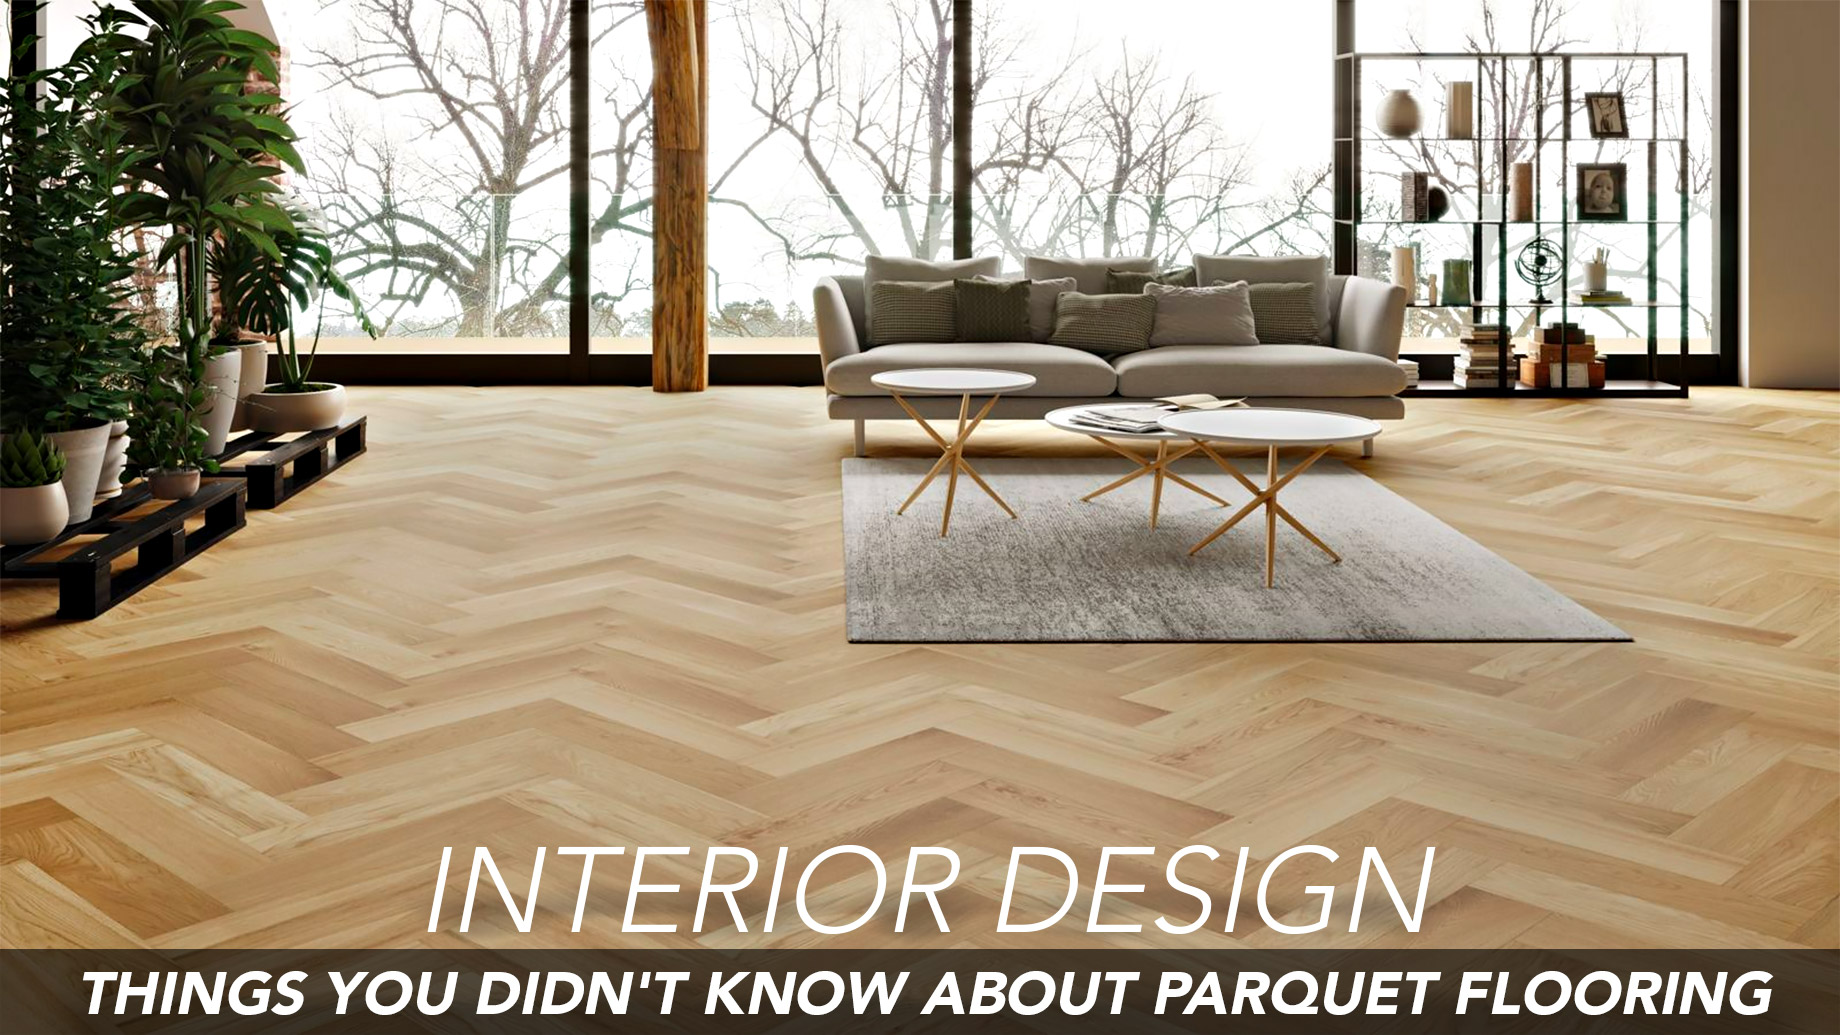 Interior Design - Things You Didn't Know About Parquet Flooring